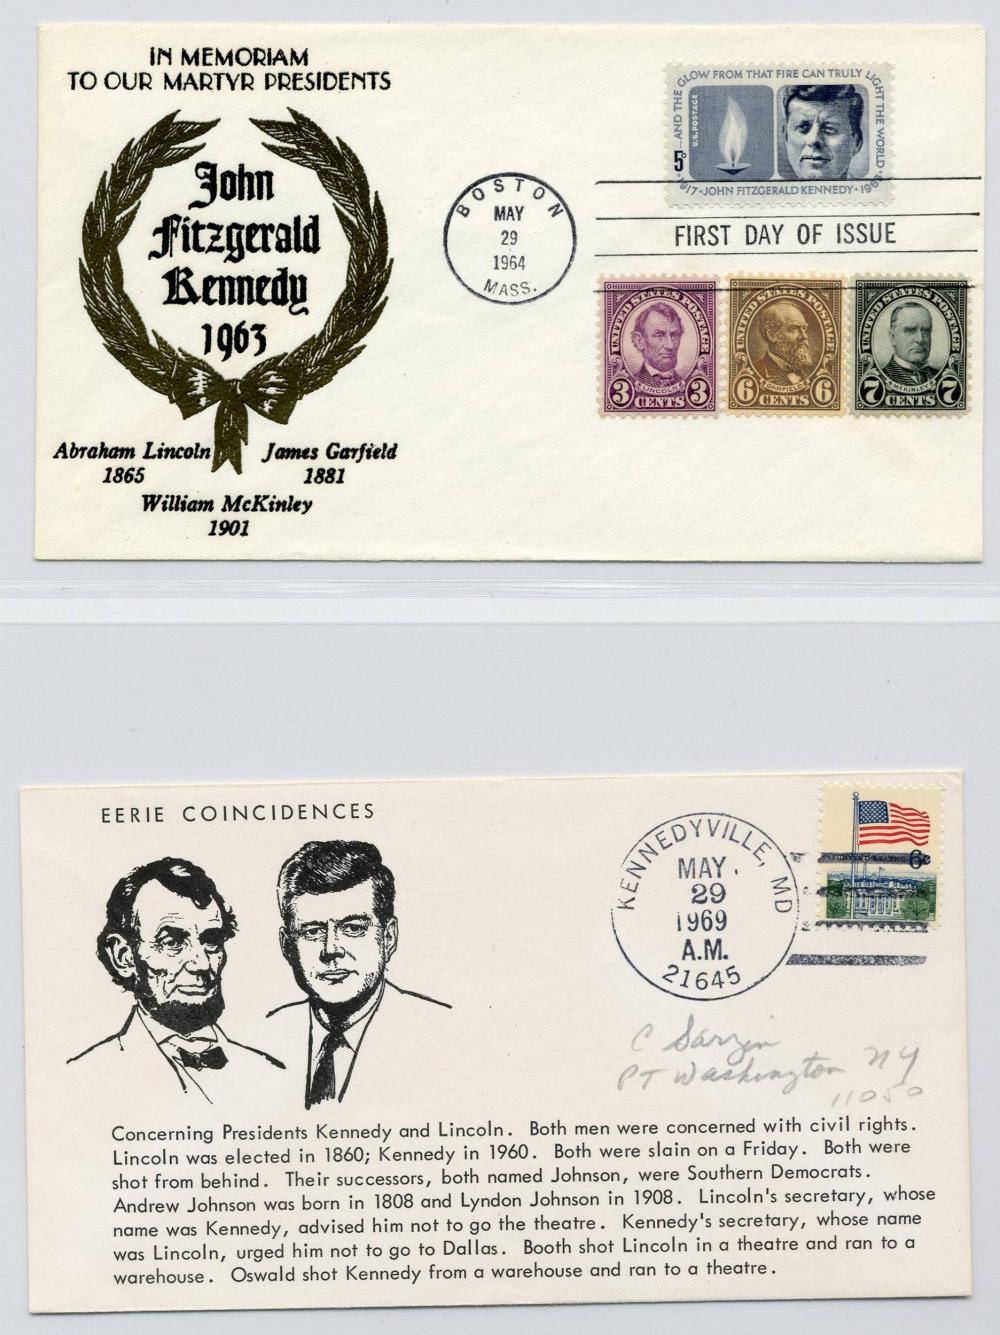 John F. Kennedy Fantastic Large Collection of Postal Memorabilia 140 Items